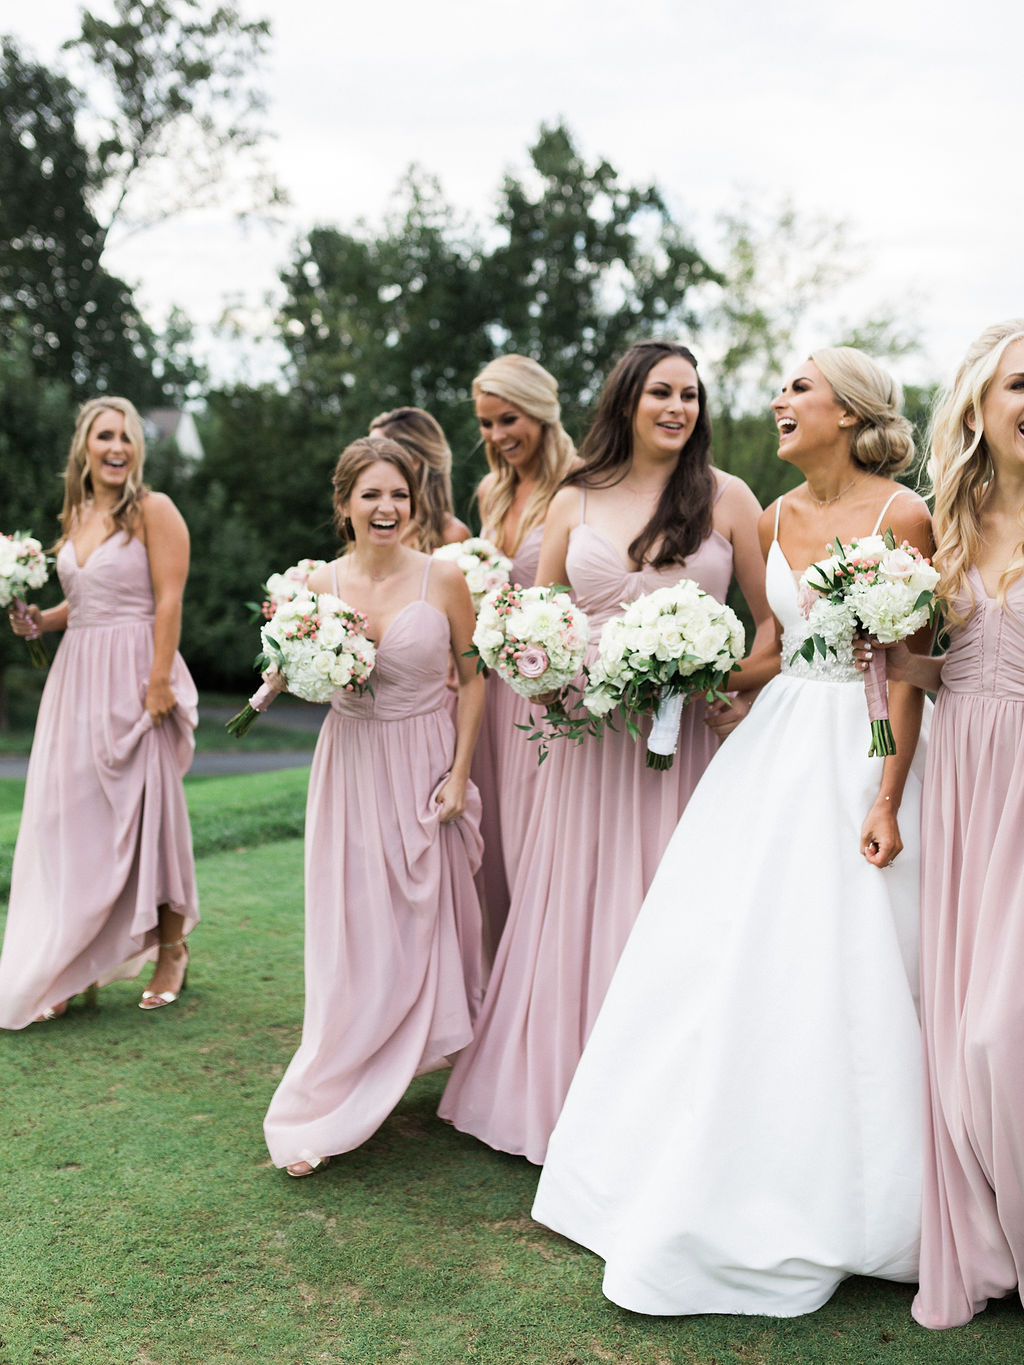 Must Have Photos With Your Bridesmaids